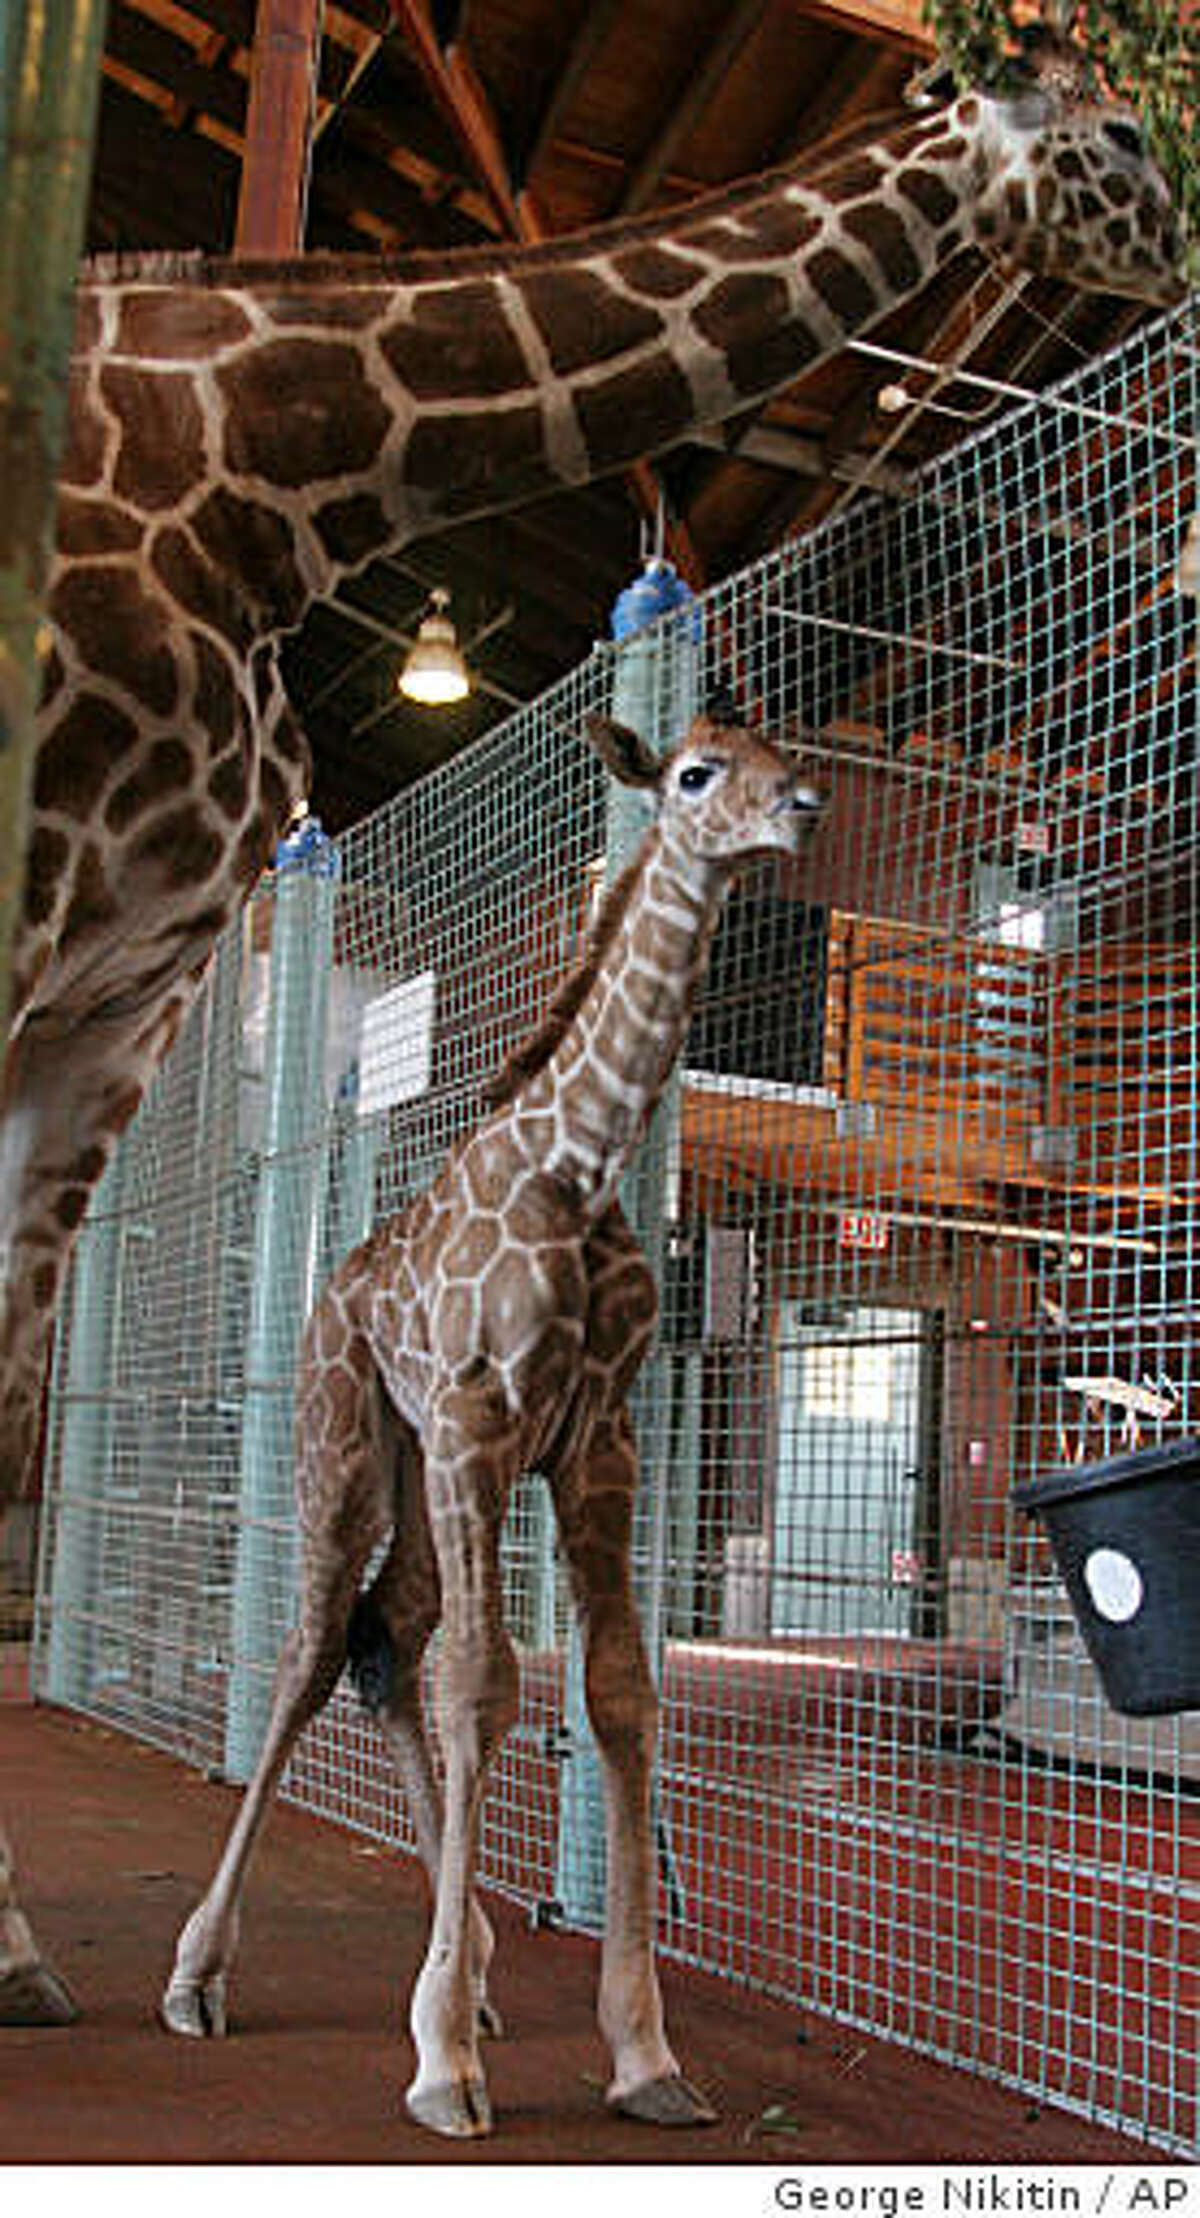 In this photo released by the San Francisco Zoo, a baby reticulated giraffe calf walks under its mother, Kristin, at the San Francisco Zoo, Thursday, April 2, 2009 in San Francisco, Calif.